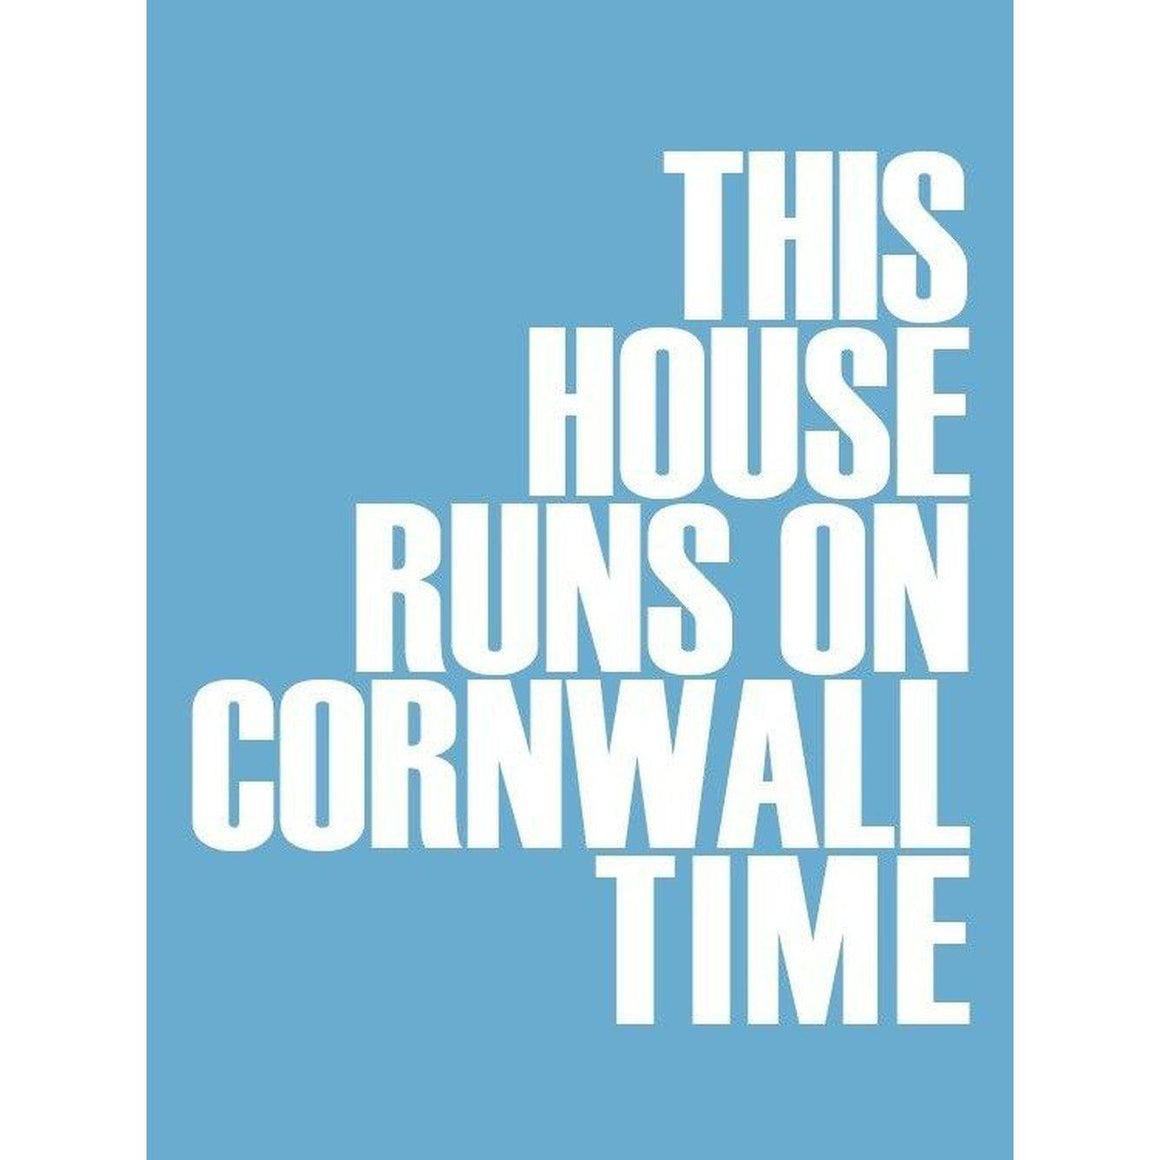 Cornwall Typographic Travel Print/Poster Seaside Art by SeaKisses